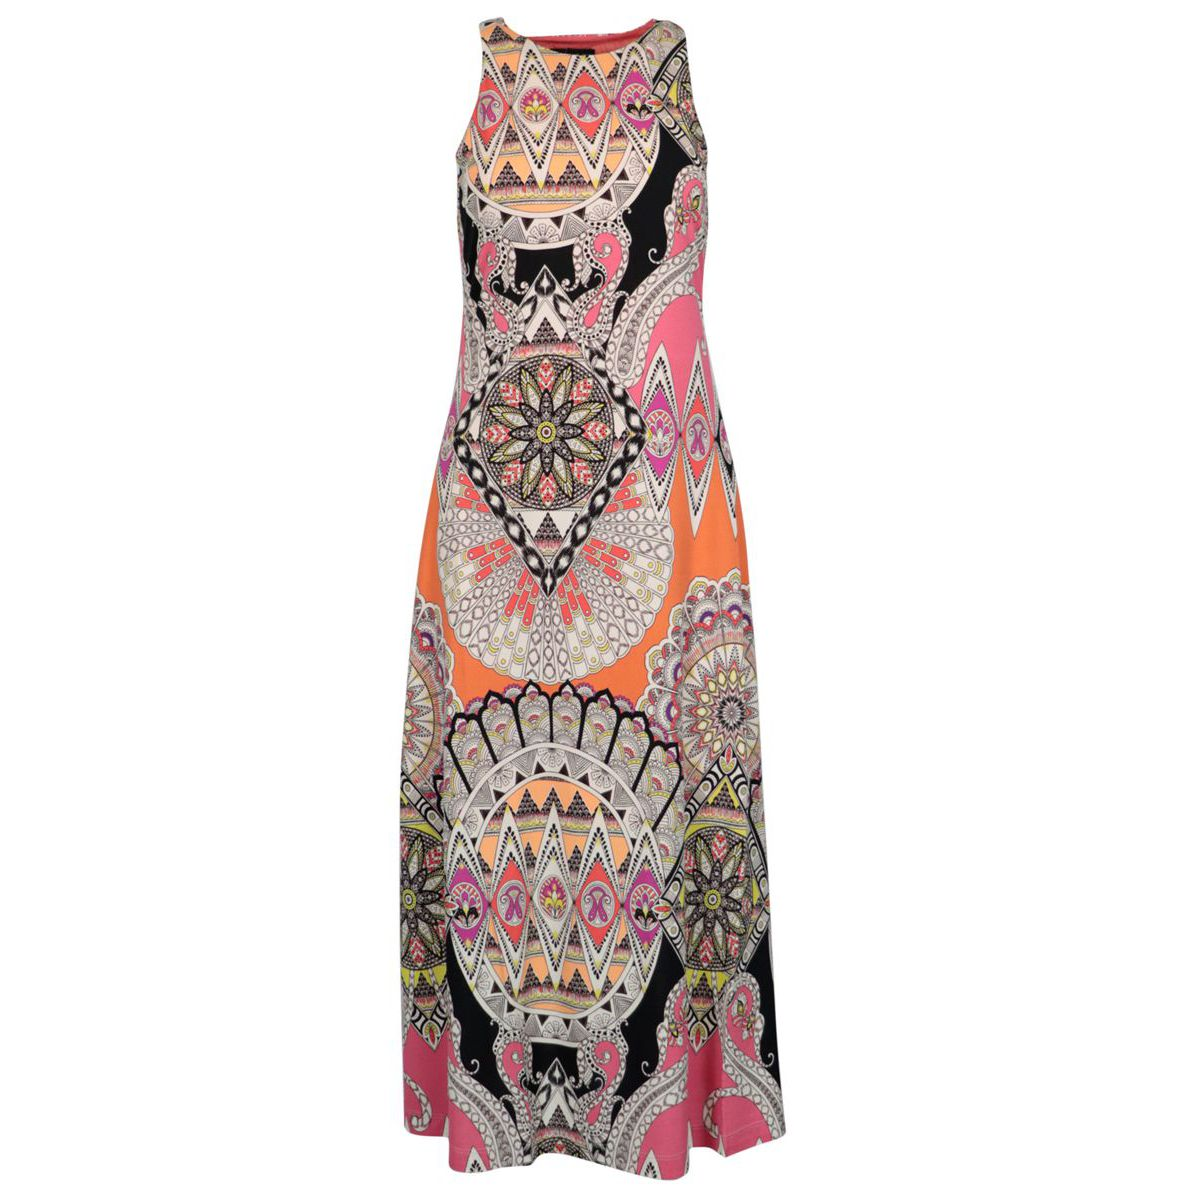 Poppy sleeveless dress in patterned jersey Coral Etro